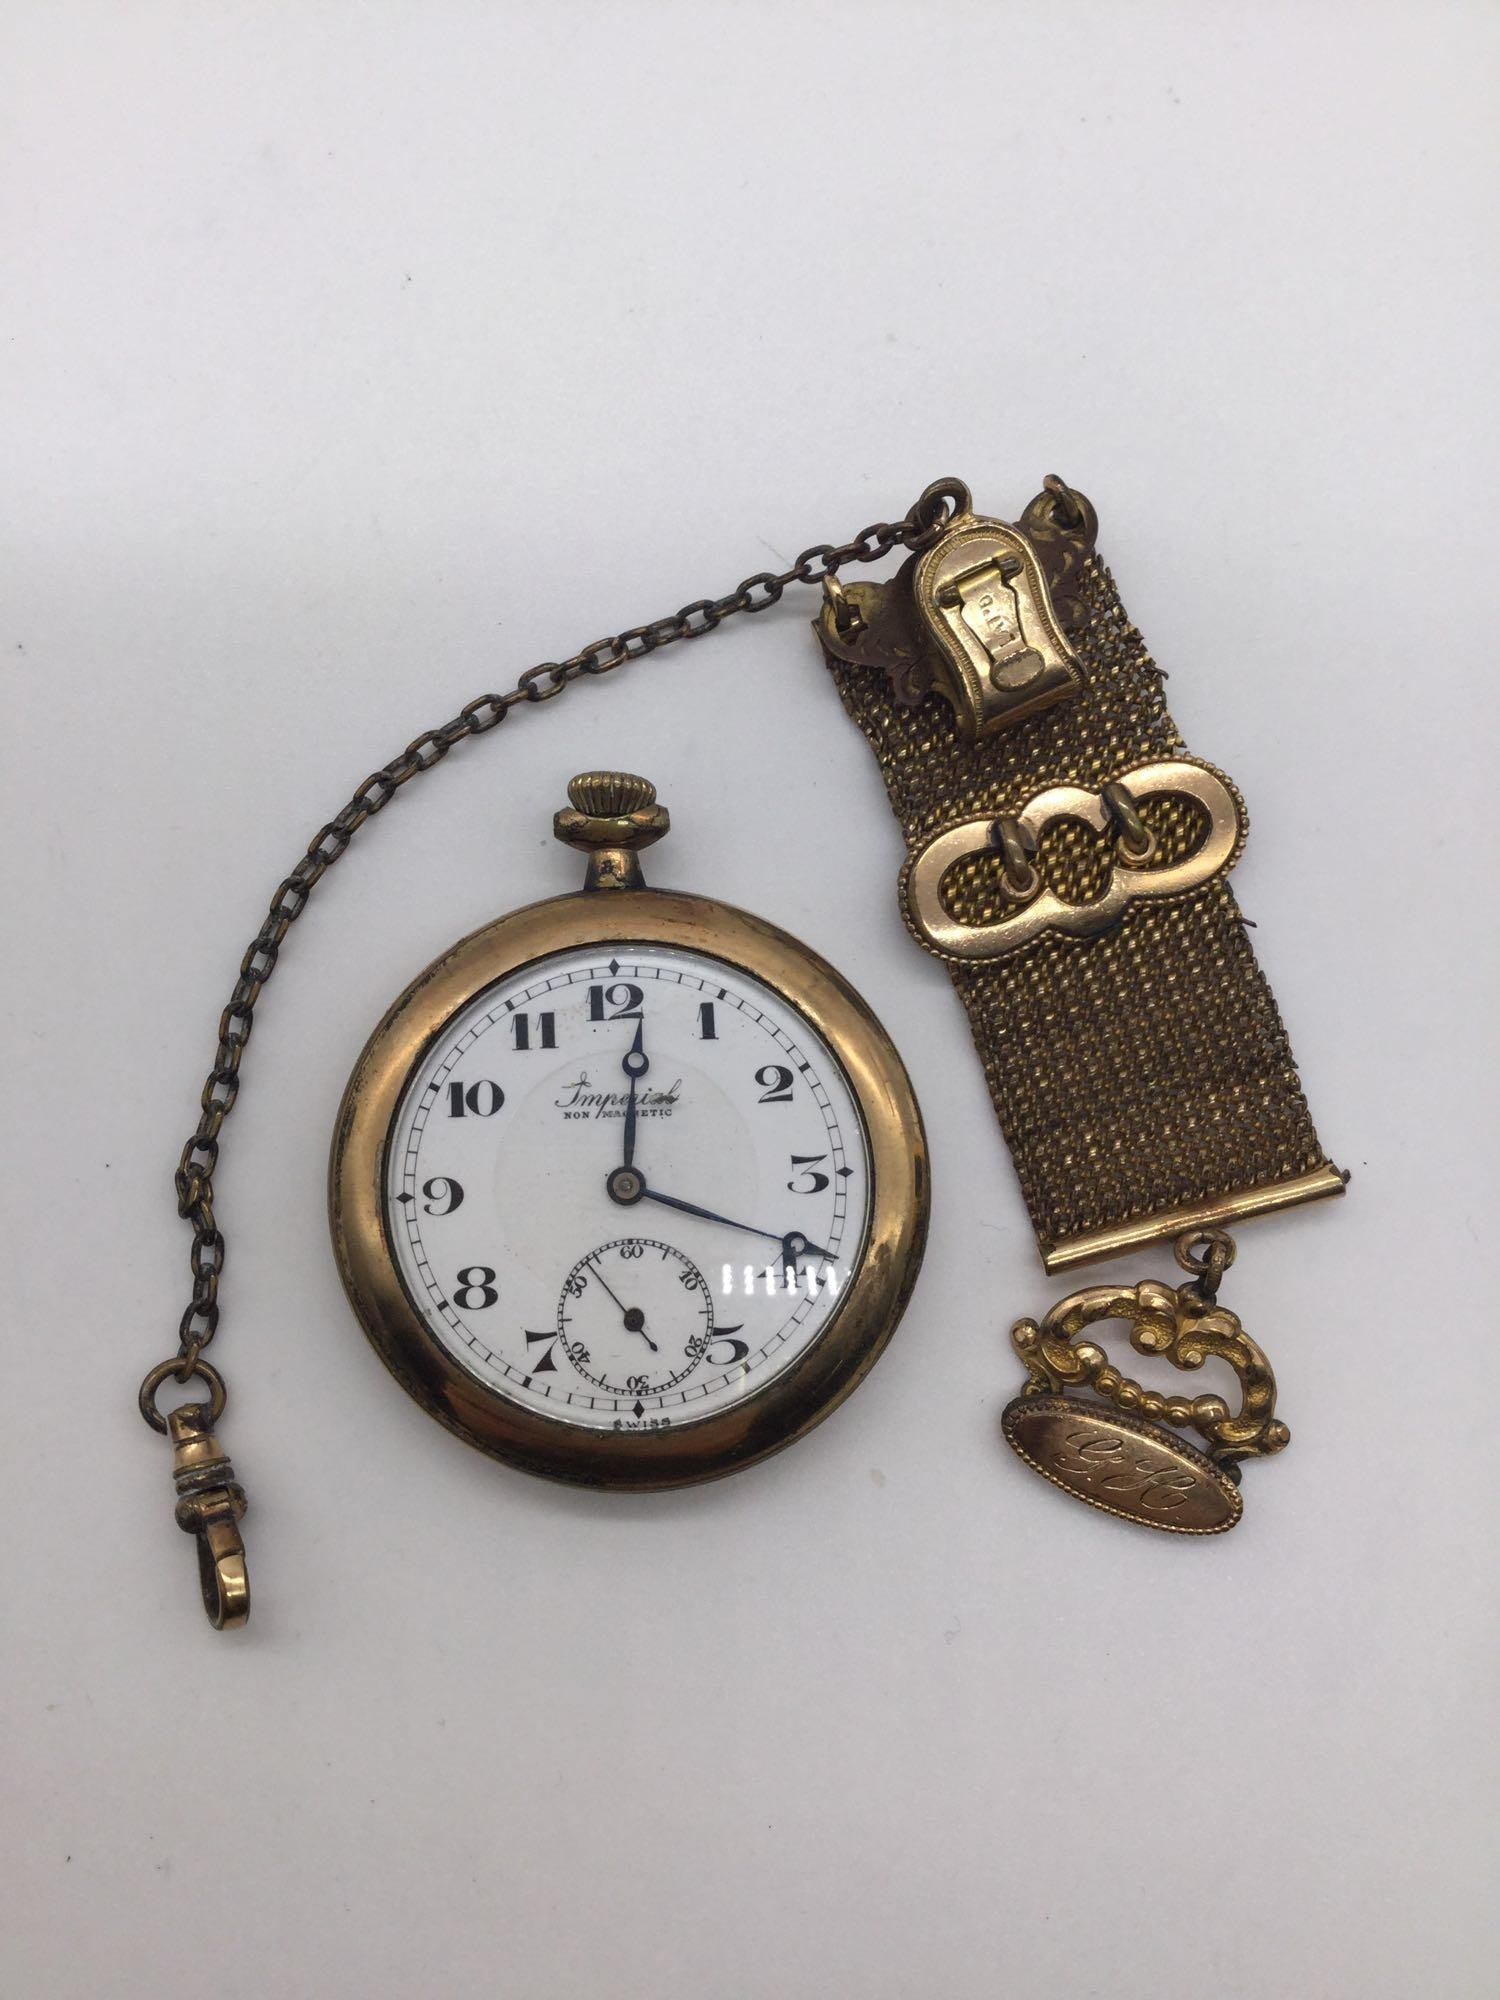 Antique Imperial 15 jewel pocket watch with antique